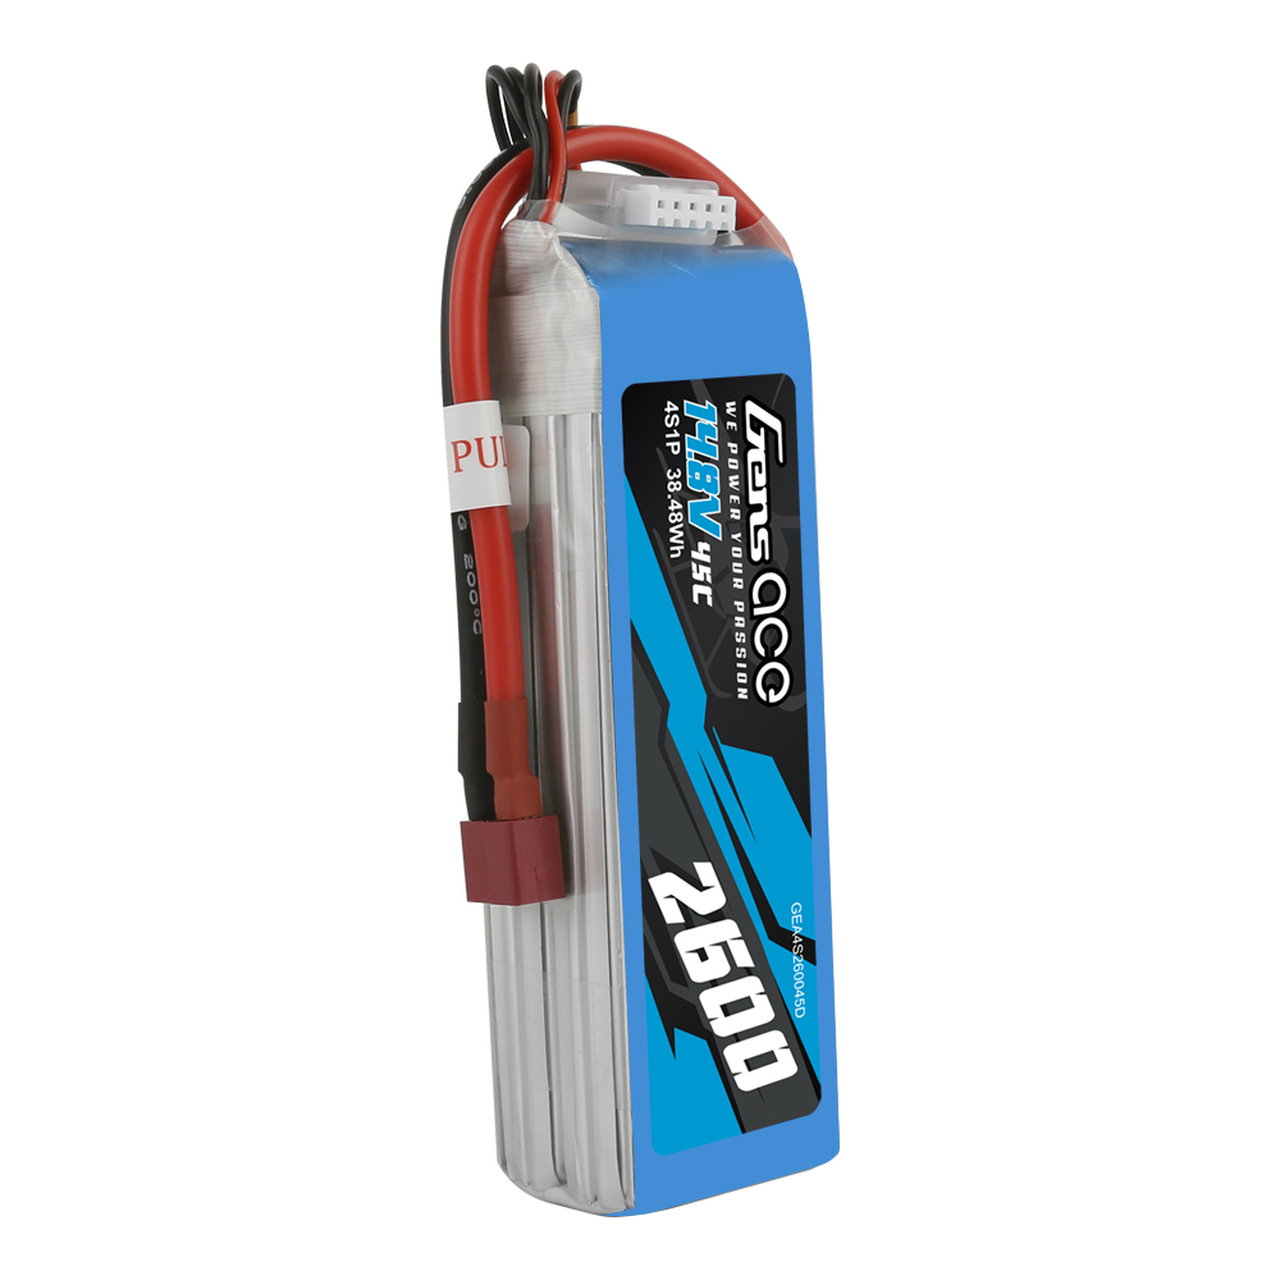 Gens Ace 2600mAh 45C 4S 14.8V  Lipo Battery Pack with Deans Plug